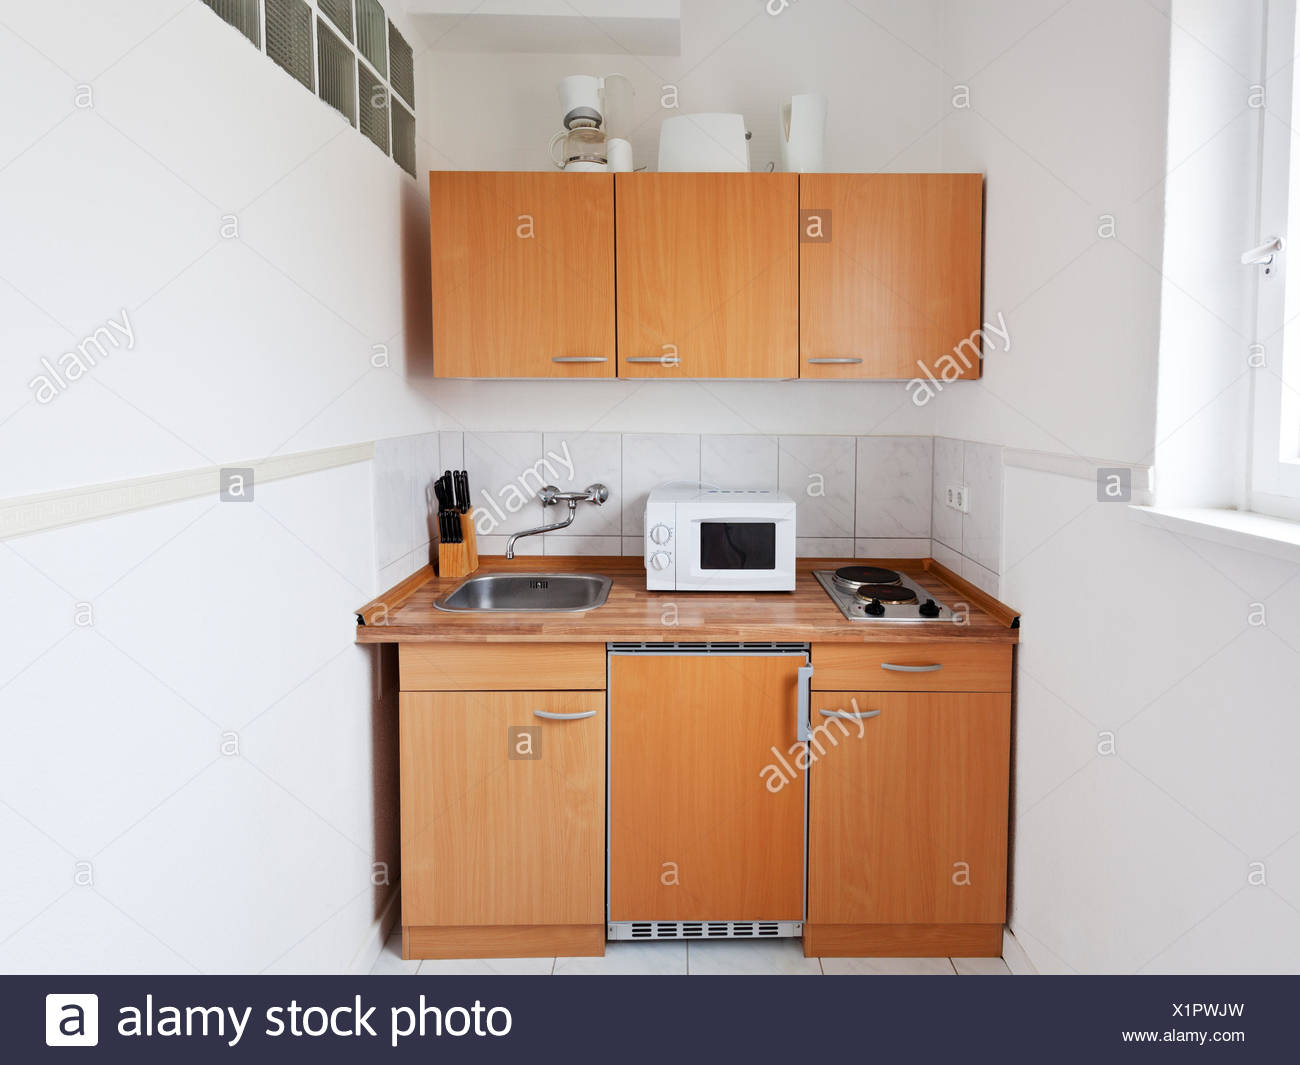 Small kitchen with furniture set and kitchen equipment